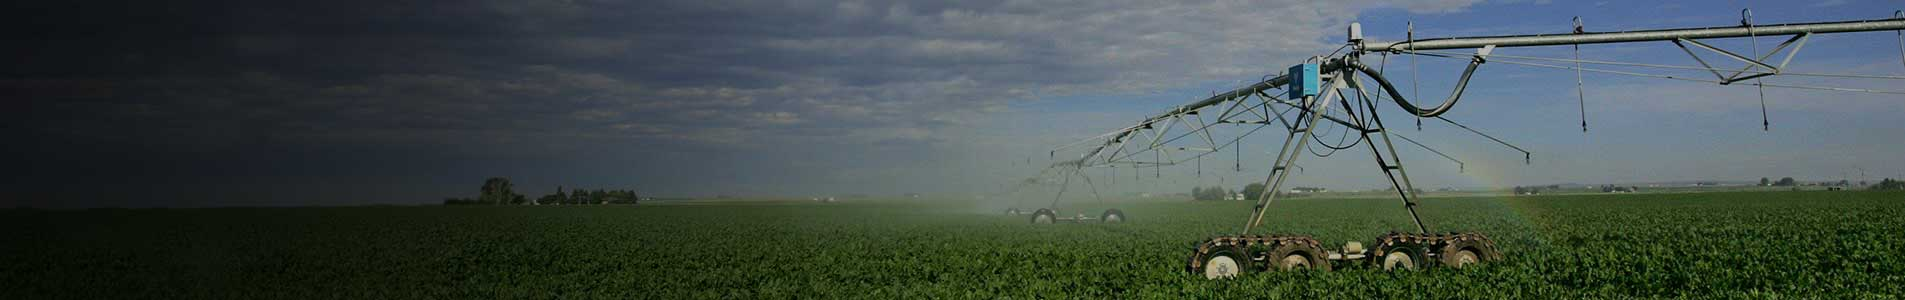 valley flotation and traction solutions for center pivot irrigation